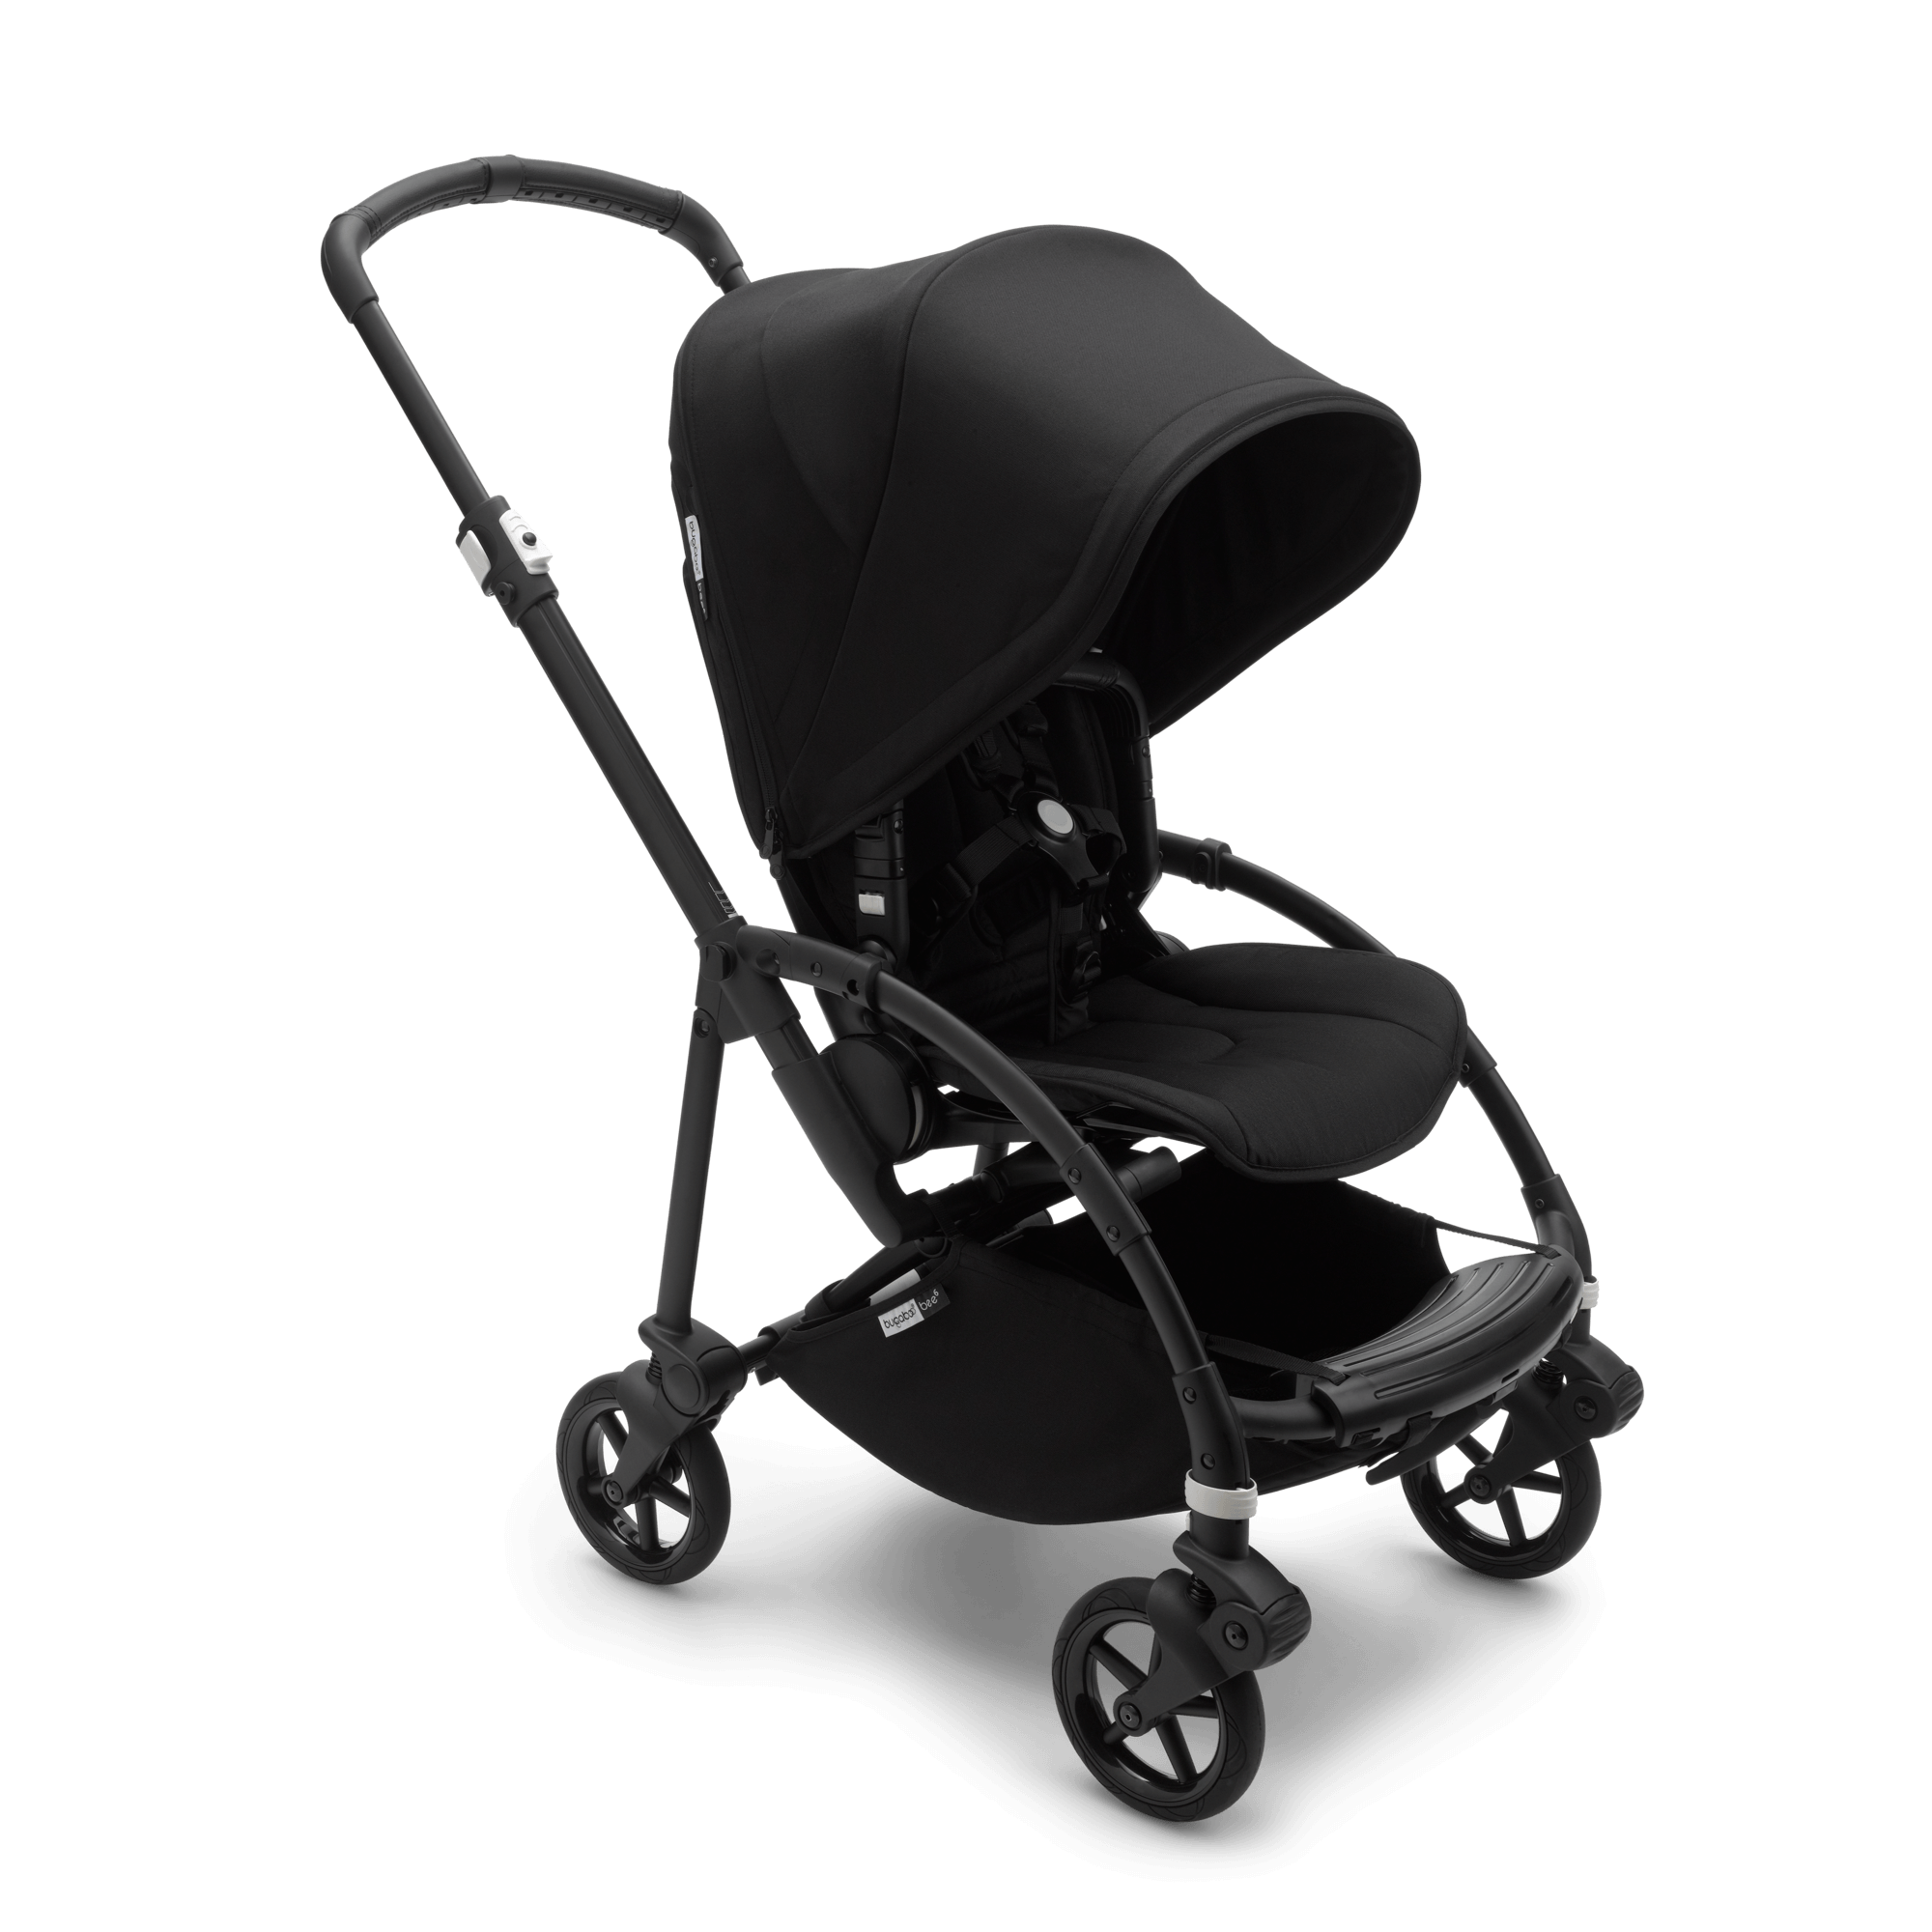 Bugaboo Pushchair Bag Bugaboo Bee 6 Carrycot And Seat Pushchair Black Sun Canopy